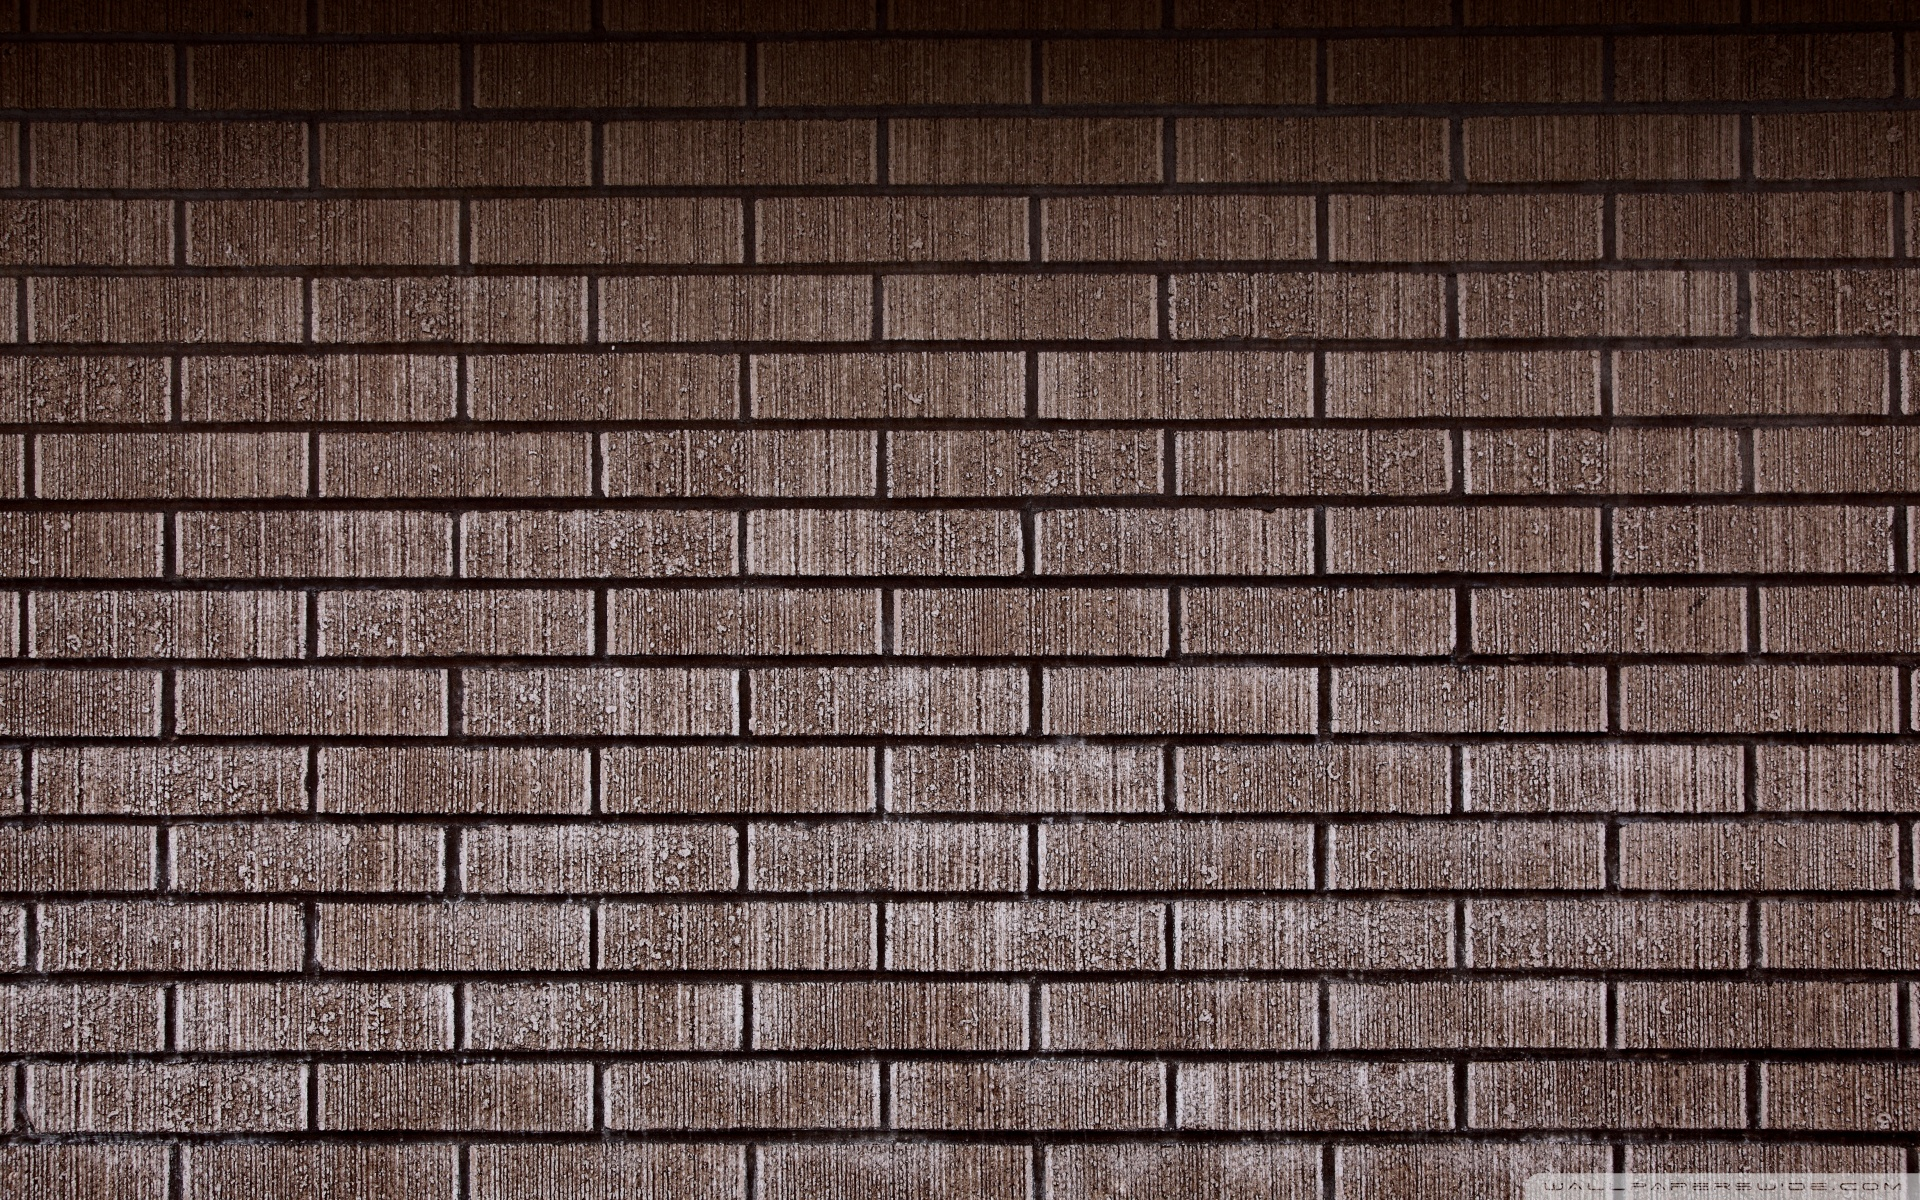 Stone Wall clipart brick wall background Cool Brick Wall Ideas Popular